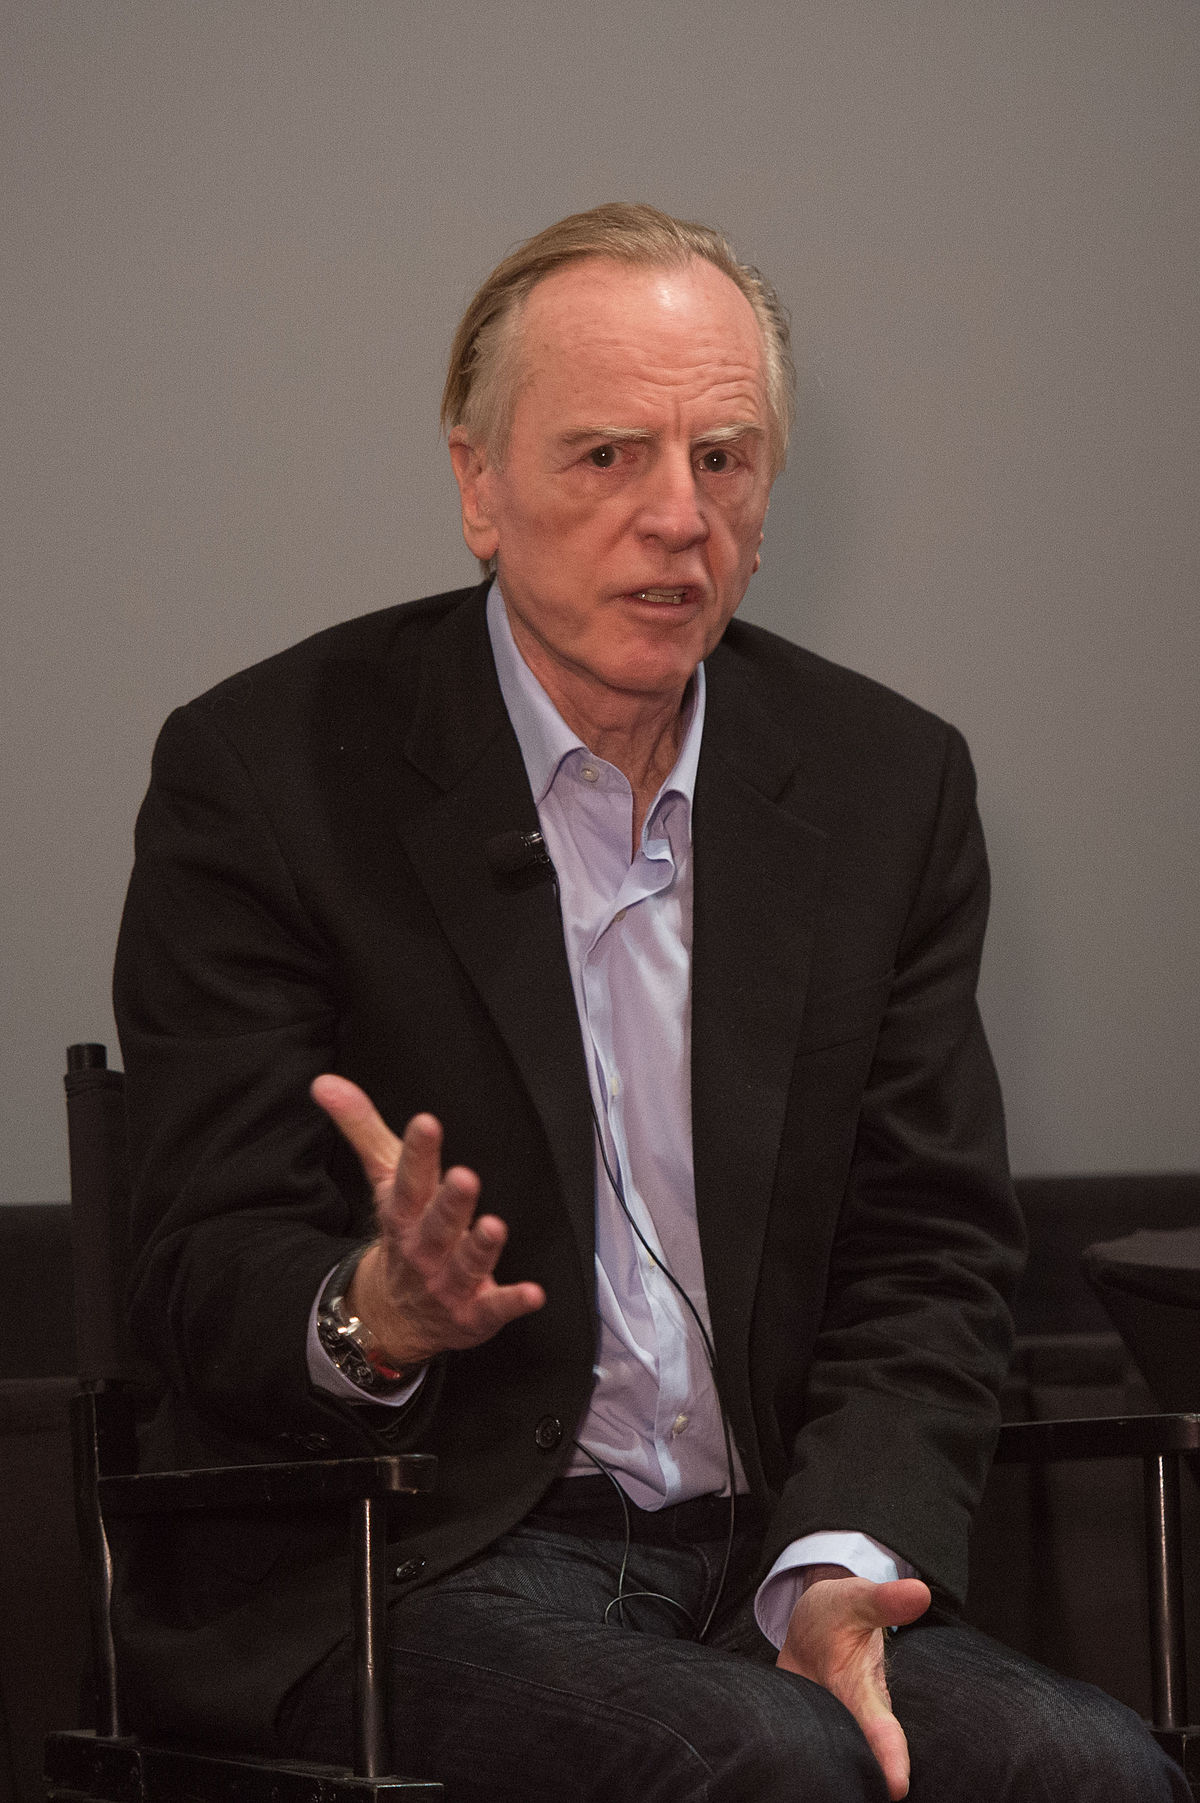 John Sculley, American businessman: biography, career 78